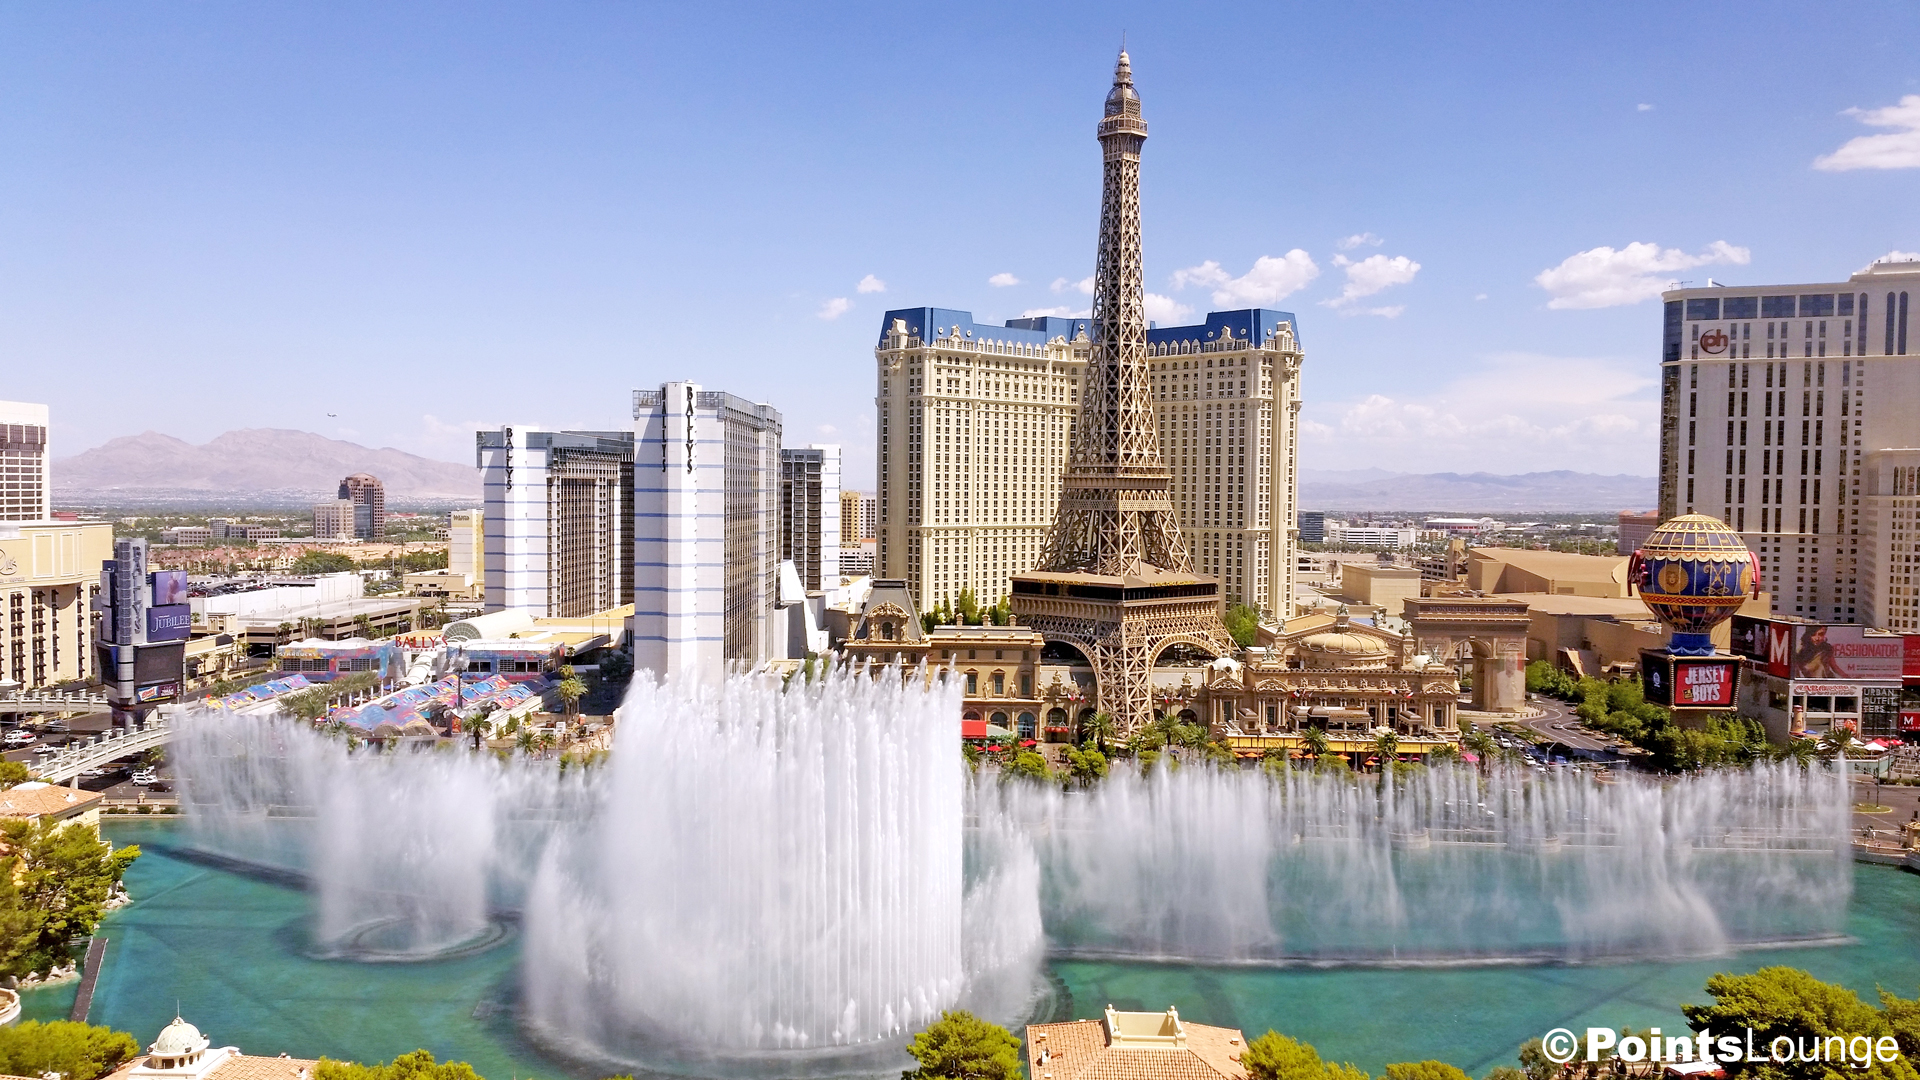 The view from our upgraded room -- thanks to American Express Fine Hotels and Resorts -- at Bellagio Las Vegas! (Click for a larger image.)